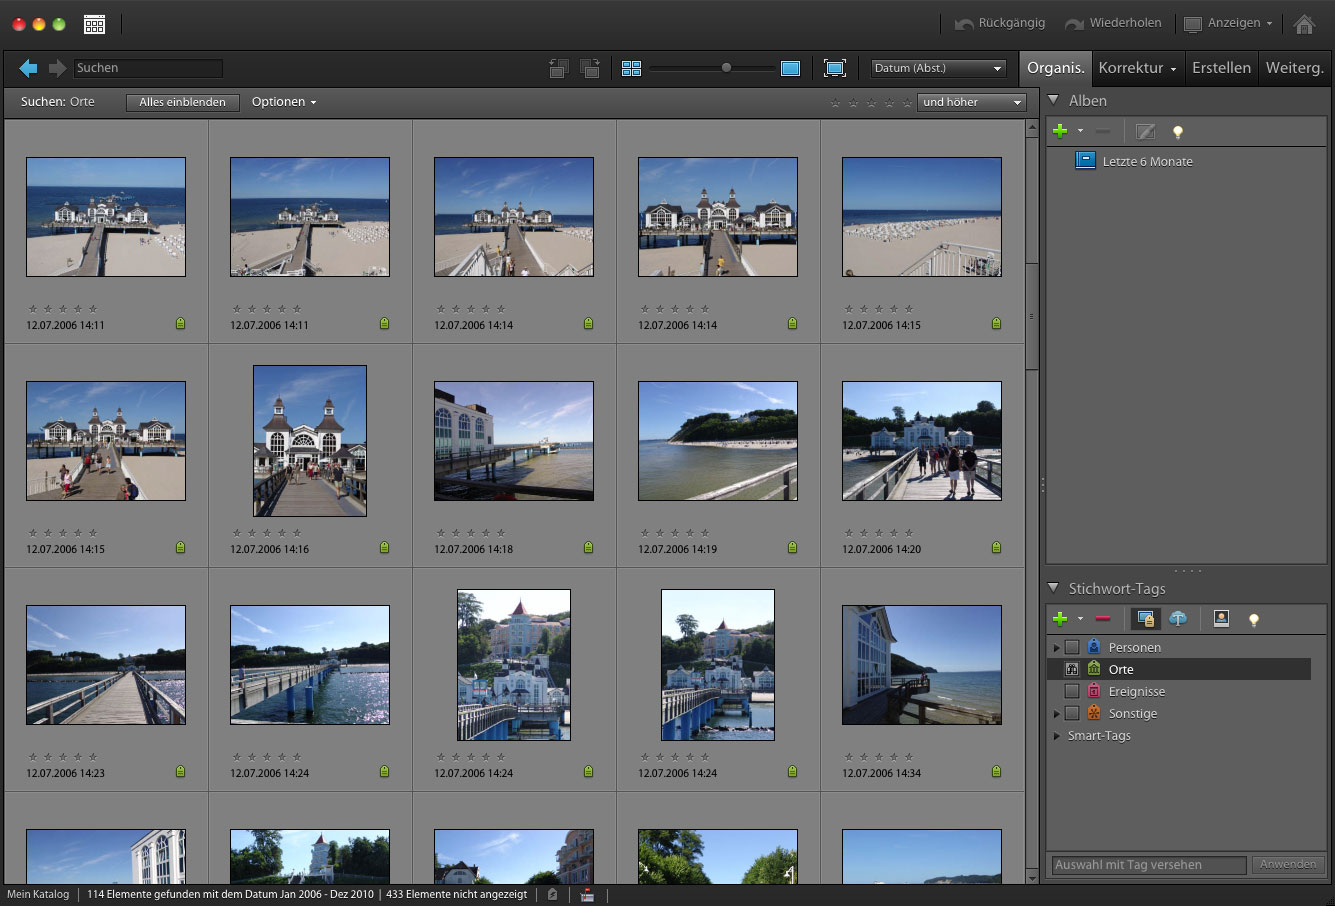 Porovnanie Adobe Photoshop produktov, Adobe Photoshop CC, Adobe Photoshop Elements a Adobe Photoshop Lightroom